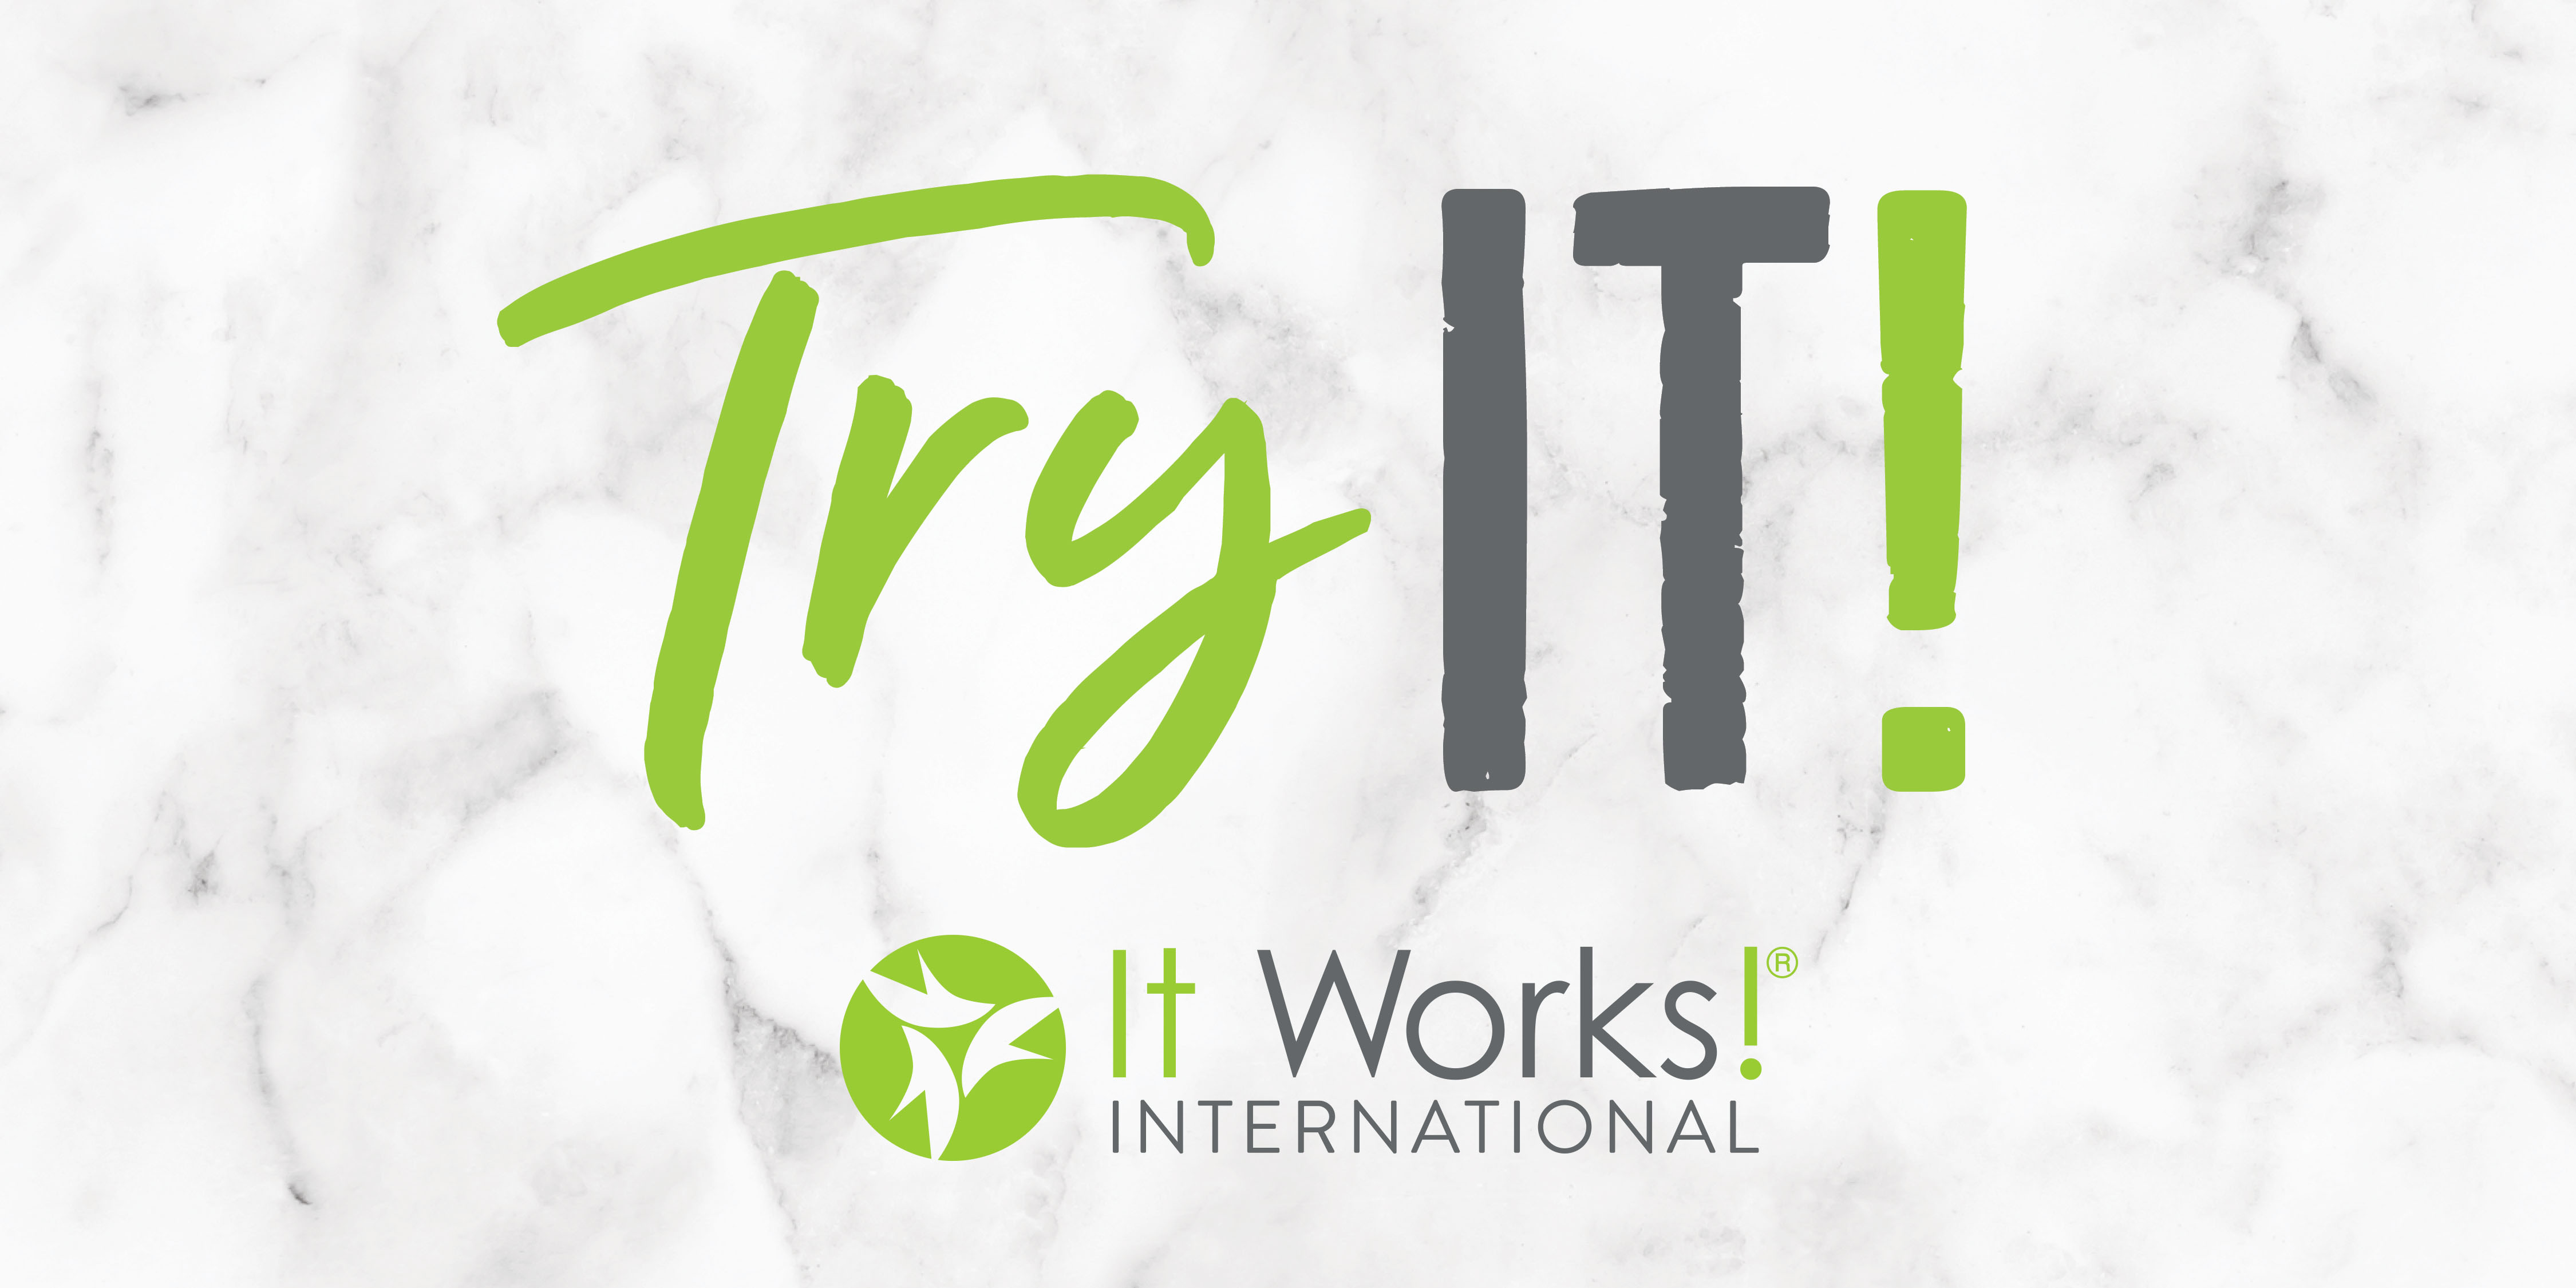 "Are you ready to party?! As a Diamond and above Distributor, you have the privilege of hosting Try It! events in your area! This information and check list are designed to help guide you through hosting a successful, compliant event. Your Corporate and Field Development teams are here to support you and keep things running smoothly.<br> <br>Try It! events take your Wrap Party to a Whole 'Notha Level! Try It! events are not intended to be training events*. Instead, this is for your potential new Distributors and Loyal Customers interested in learning more about that #CrazyWrapThing. Try It! events provide the perfect opportunity to connect with other teams in your area and get paid to party!<br><br>The following information will give you lots of tips, including what to bring, what to buy, suggested itineraries, and even how to set up your own Eventbrite page for registration!<br> <br>Let's Get Started!!<br><br> *Please note: If your goal is to Wrap and recruit, Try It! is the event for you! If you are looking to train your team, <a href=""https://www.surveymonkey.com/r/IntlMBC-EUCAAUNZ"">click here</a> for the opportunity to host a Mini Boot Camp training event."